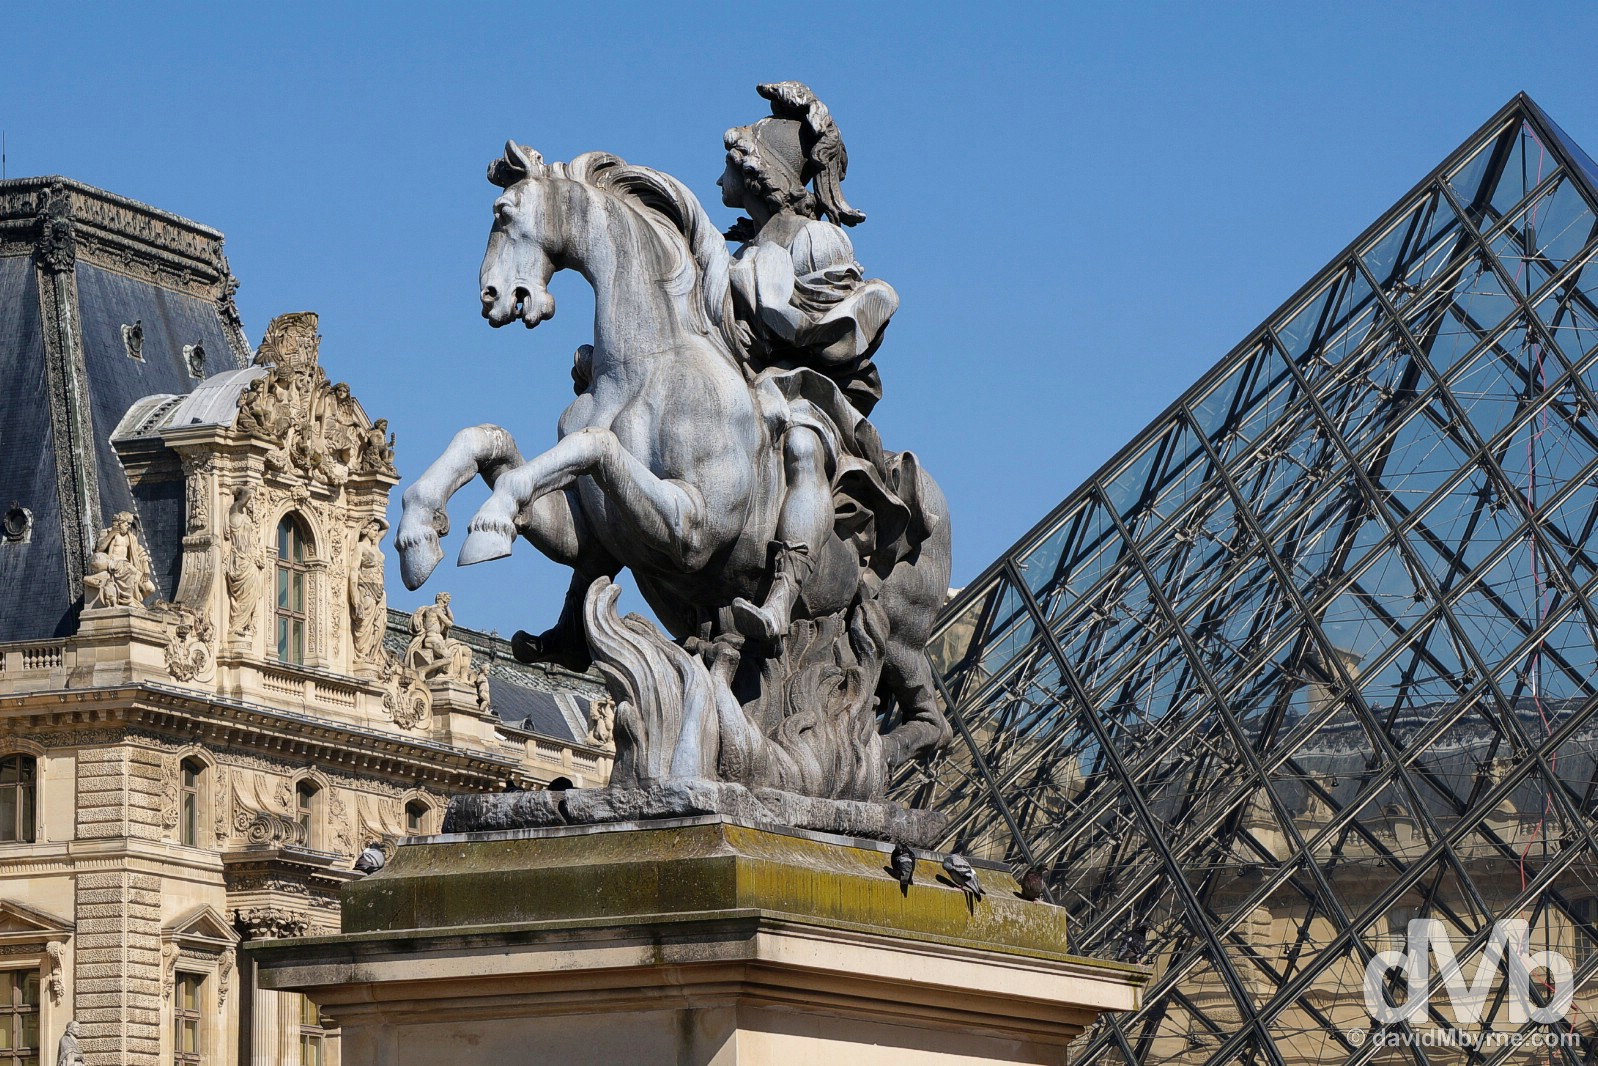 Cour Napoléon (the Napoleon Courtyard), Palace du Louvre, Paris, France. April 23, 2015.